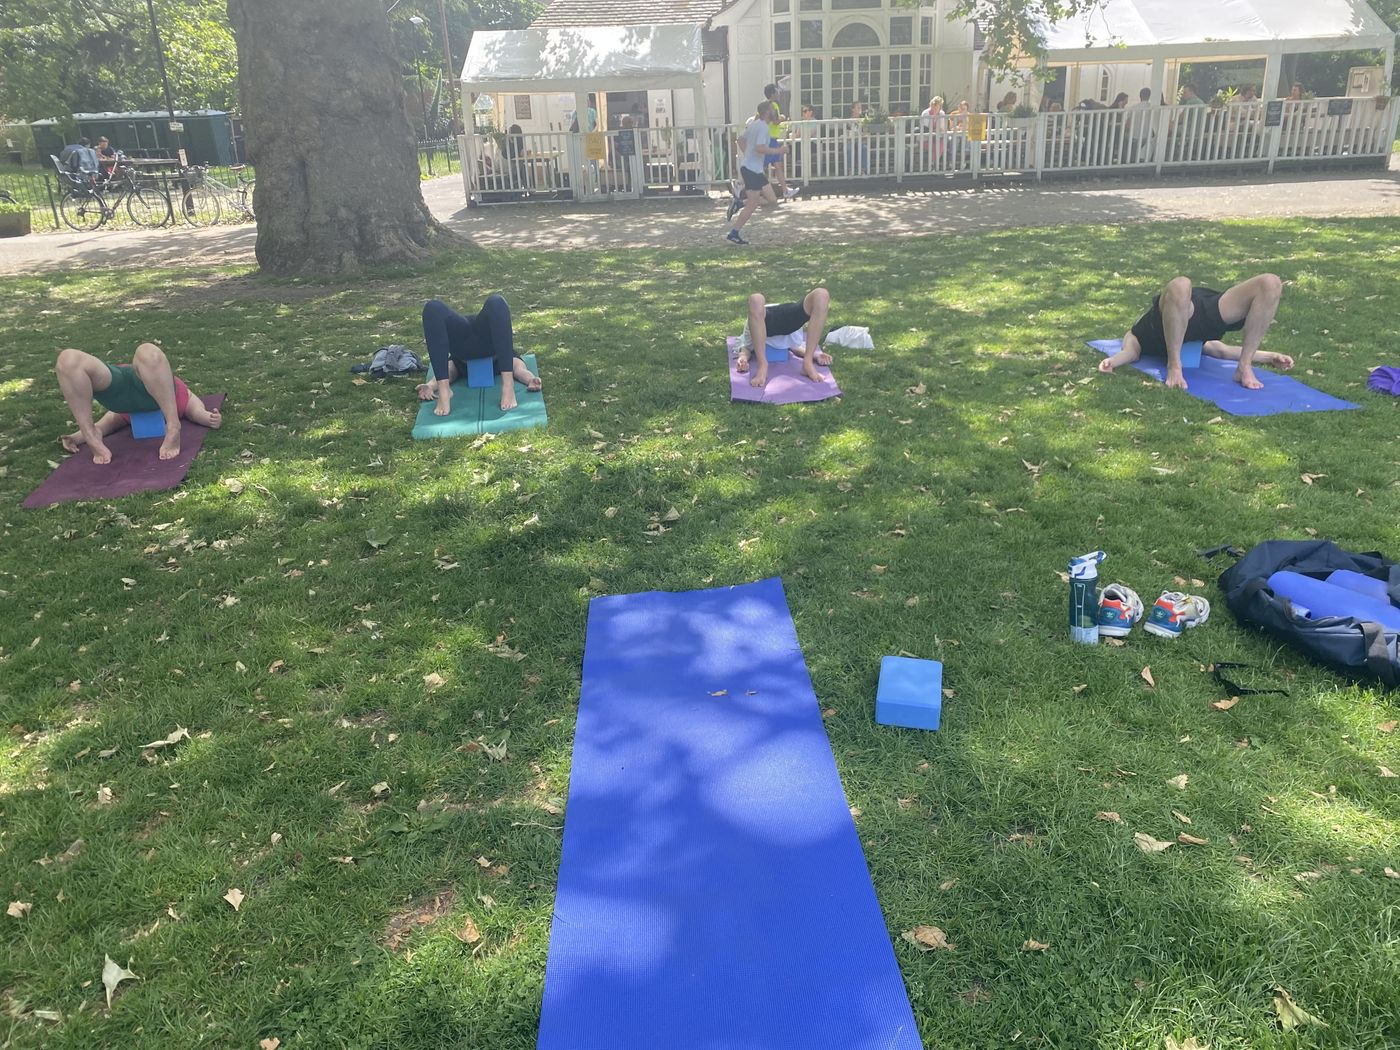 Good news! After a short hiatus, quarantining,  yoga is back on this coming Saturday 10am Kennington Park . See you soon!